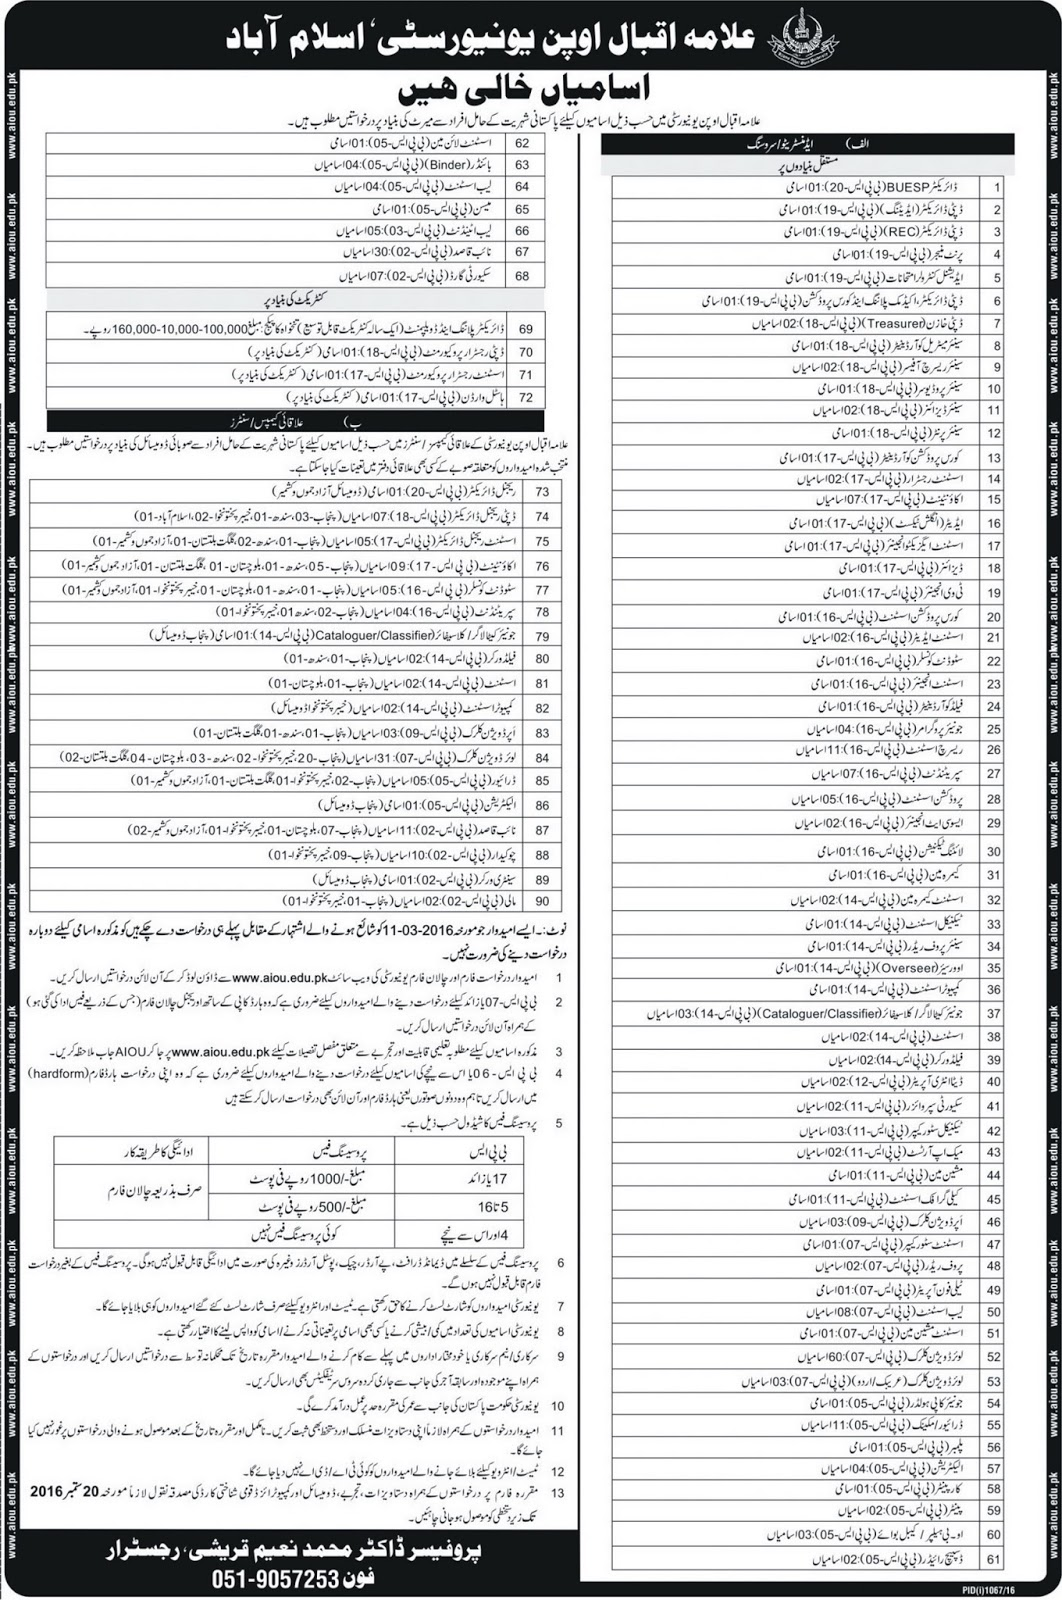 AIOU Jobs in Allama Iqbal Open University Jobs